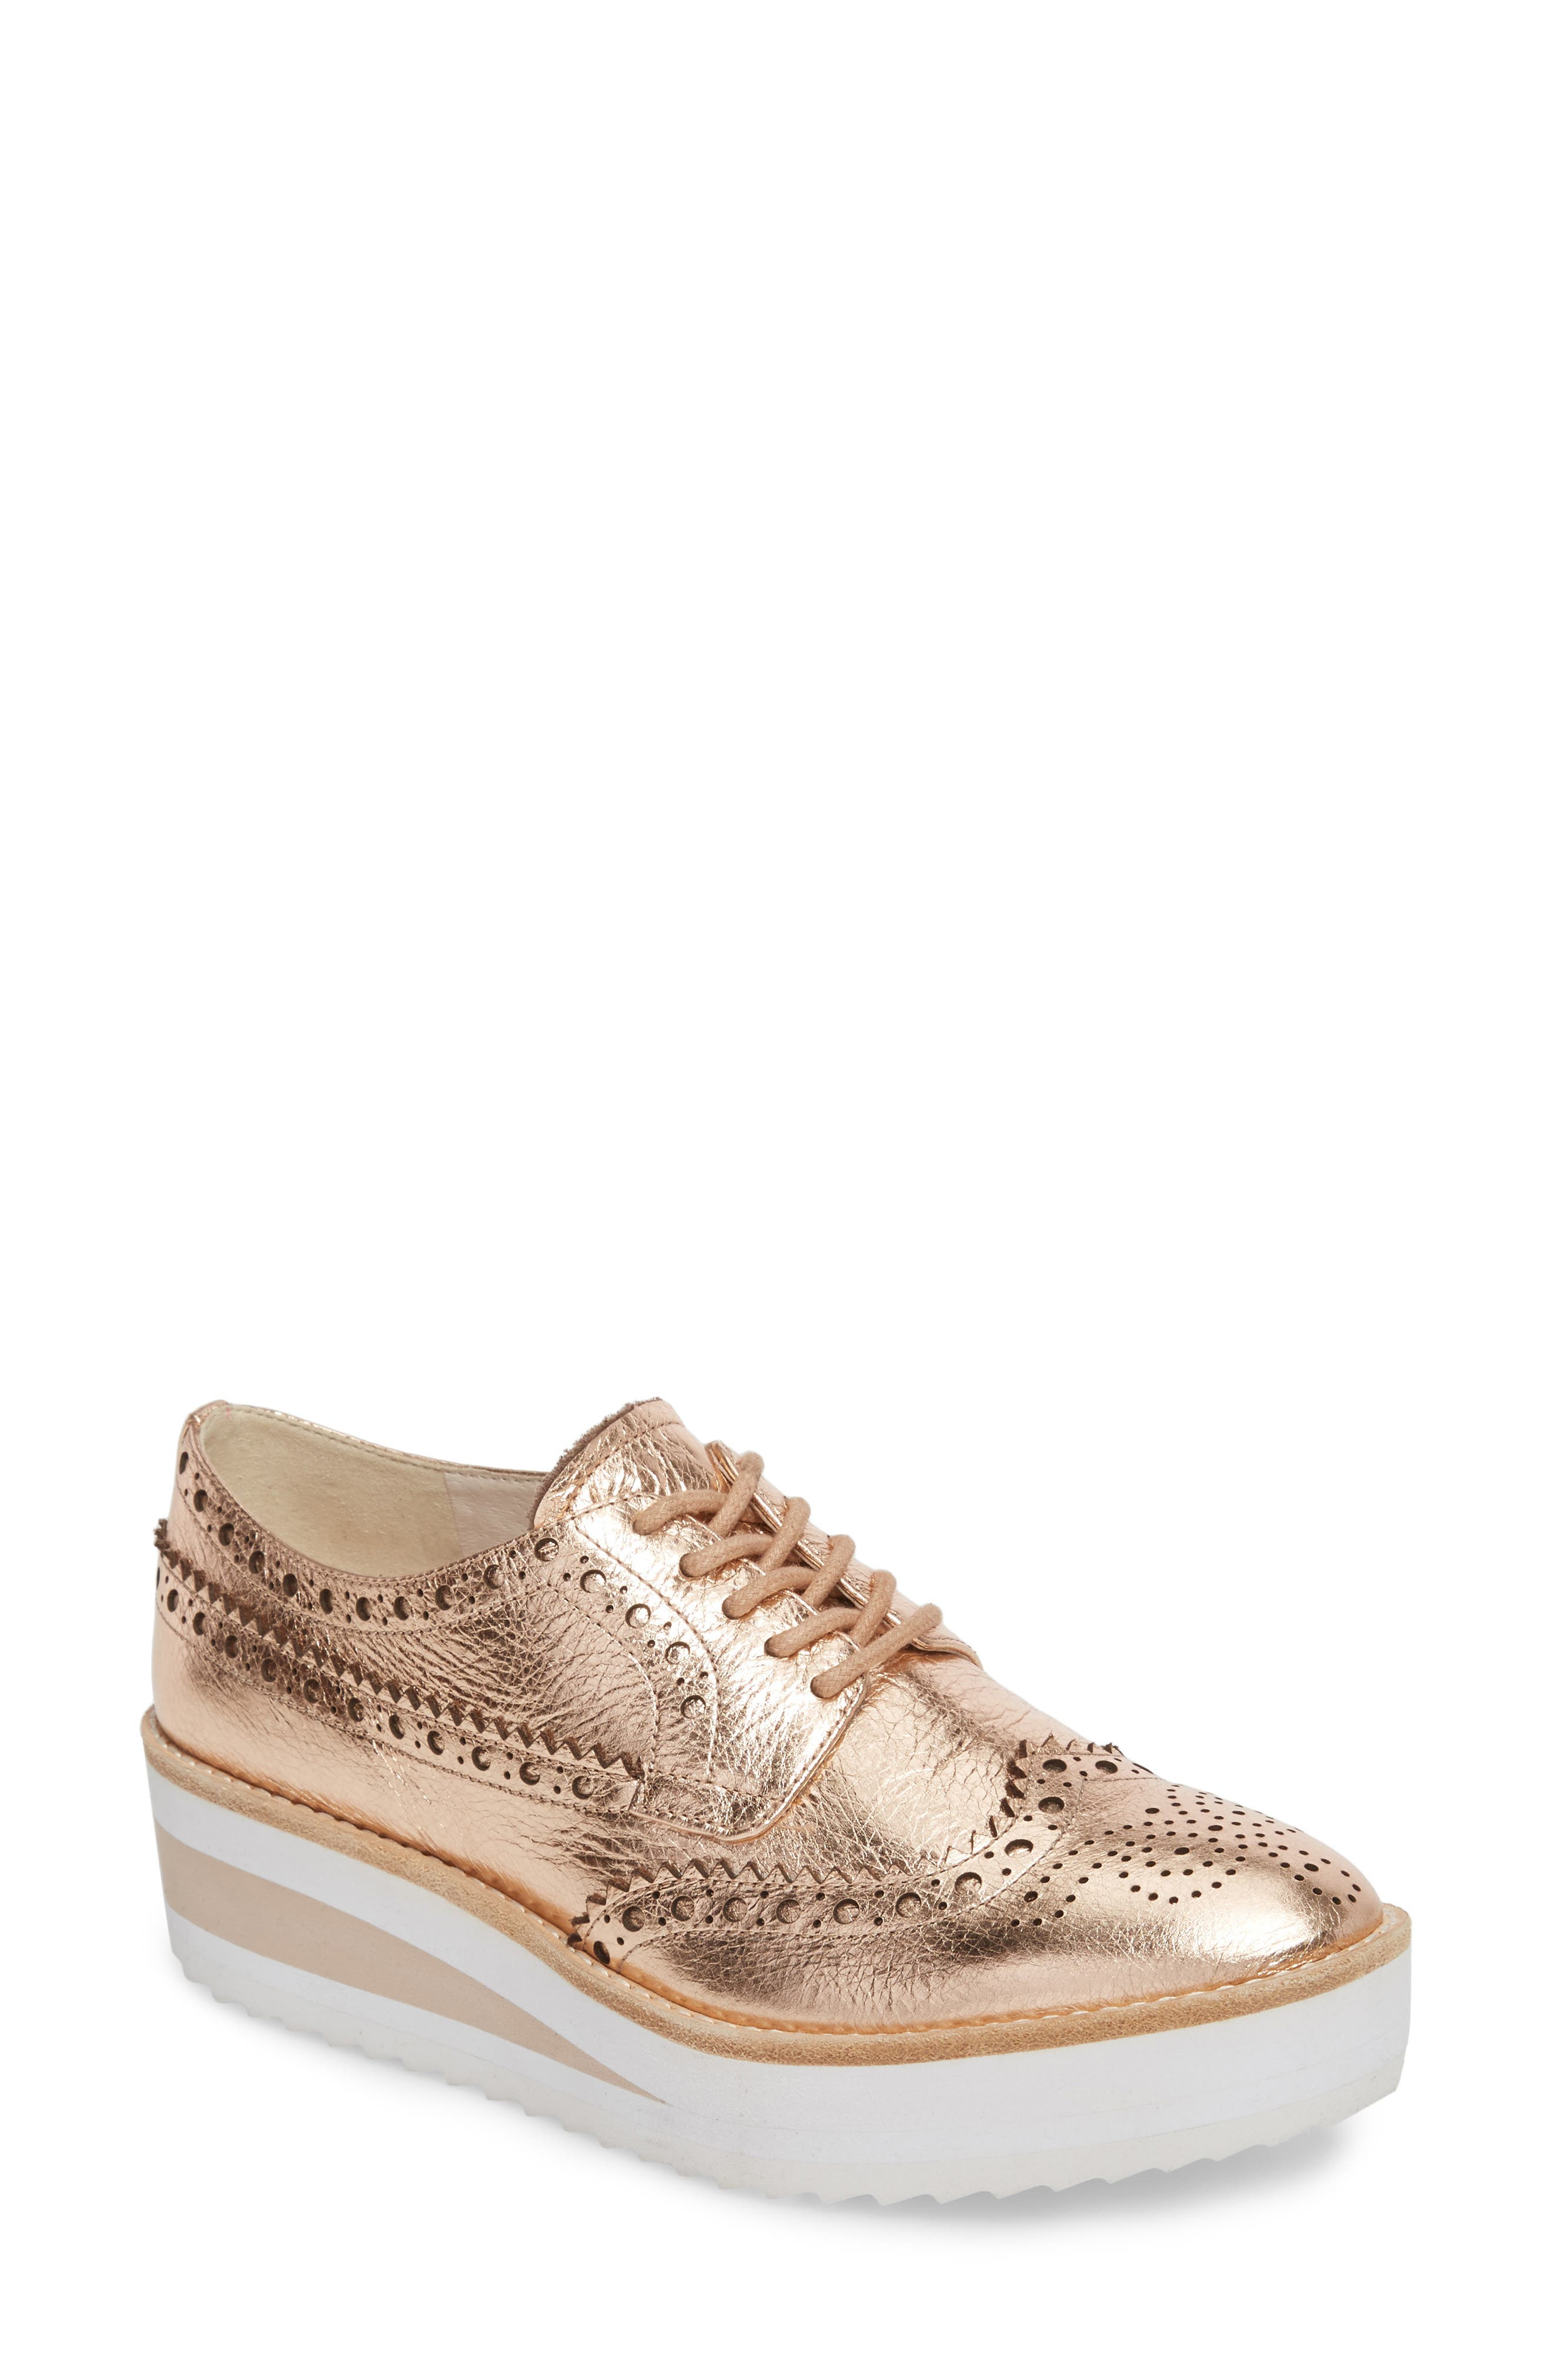 Kenneth Cole New York Roberta Platform Sneaker (Women)